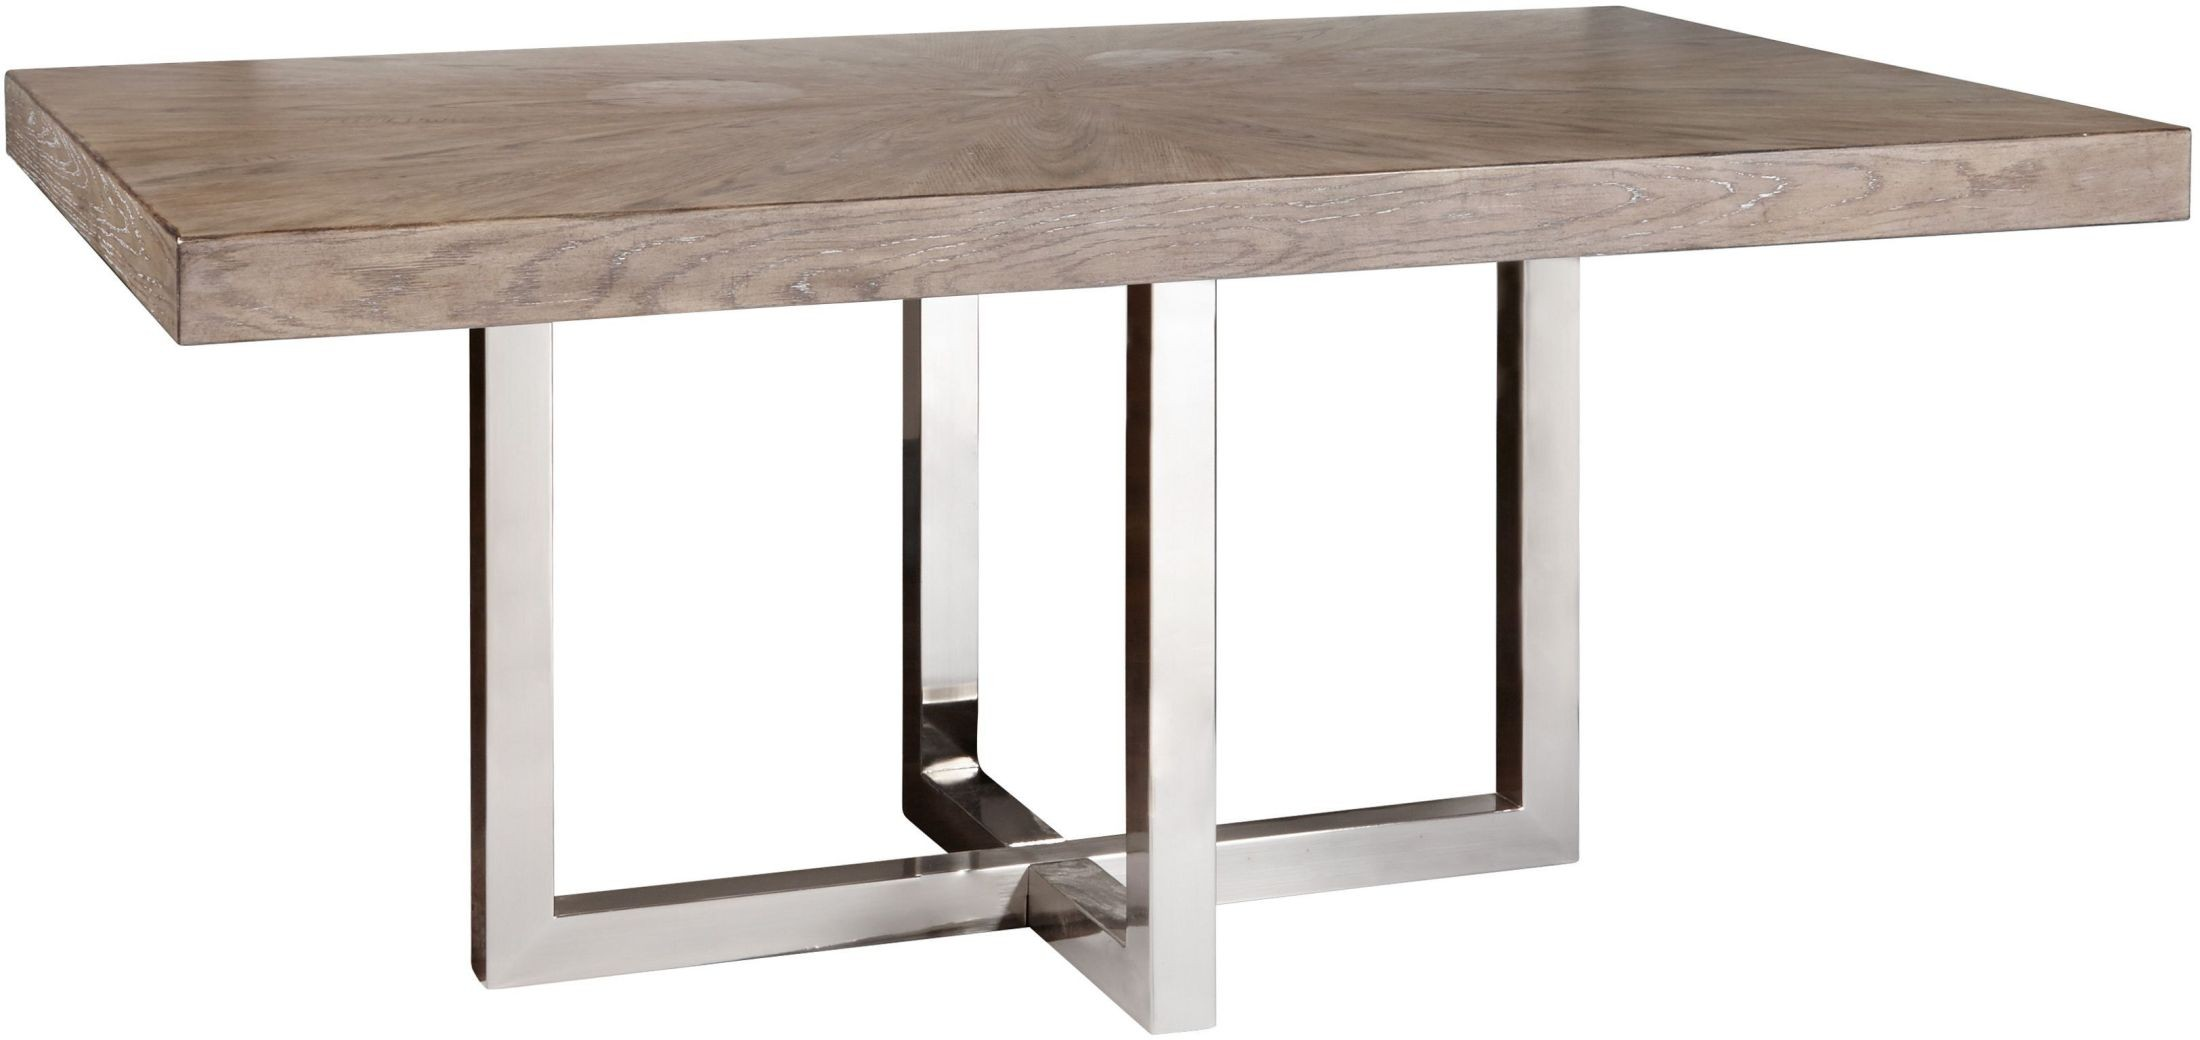 Highland Park Aged Light Brown Chrome Dining Table from  : s122 133a133bs21 from colemanfurniture.com size 2200 x 1040 jpeg 165kB